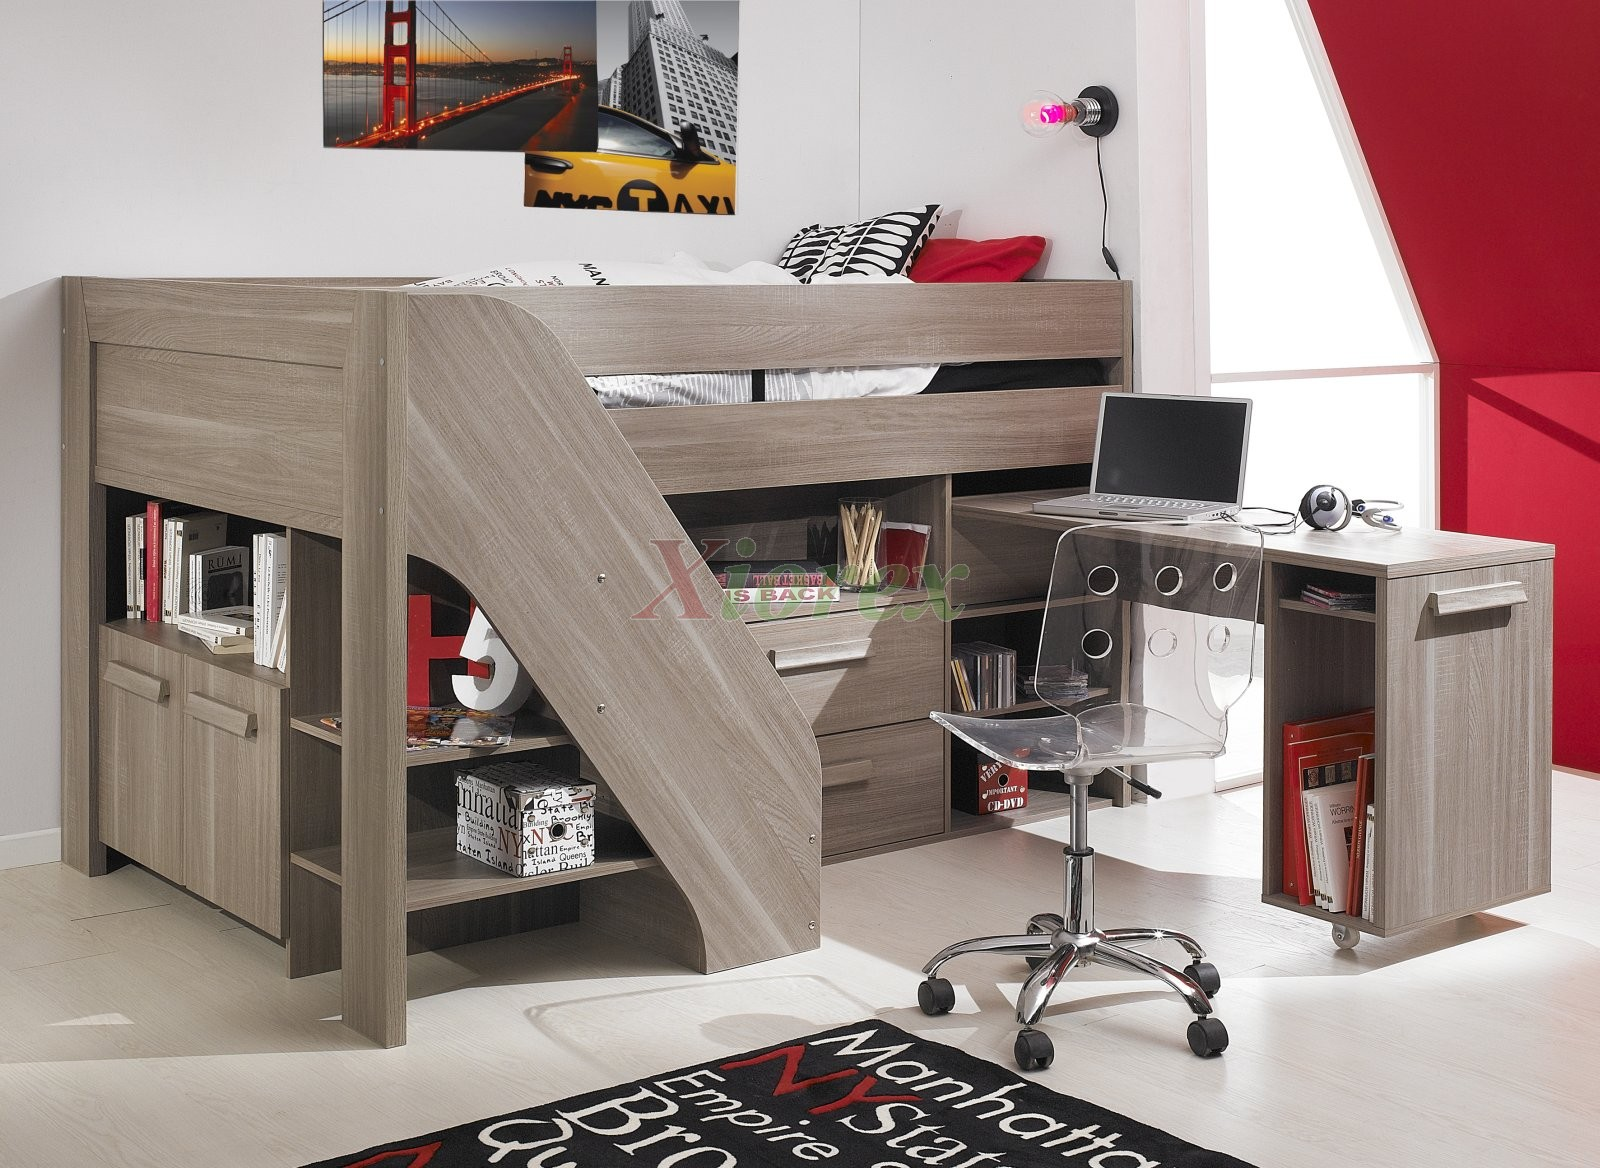 great boy bedroom decoration with tan wood loft beds for teenagers and desk plus cool rug ideas